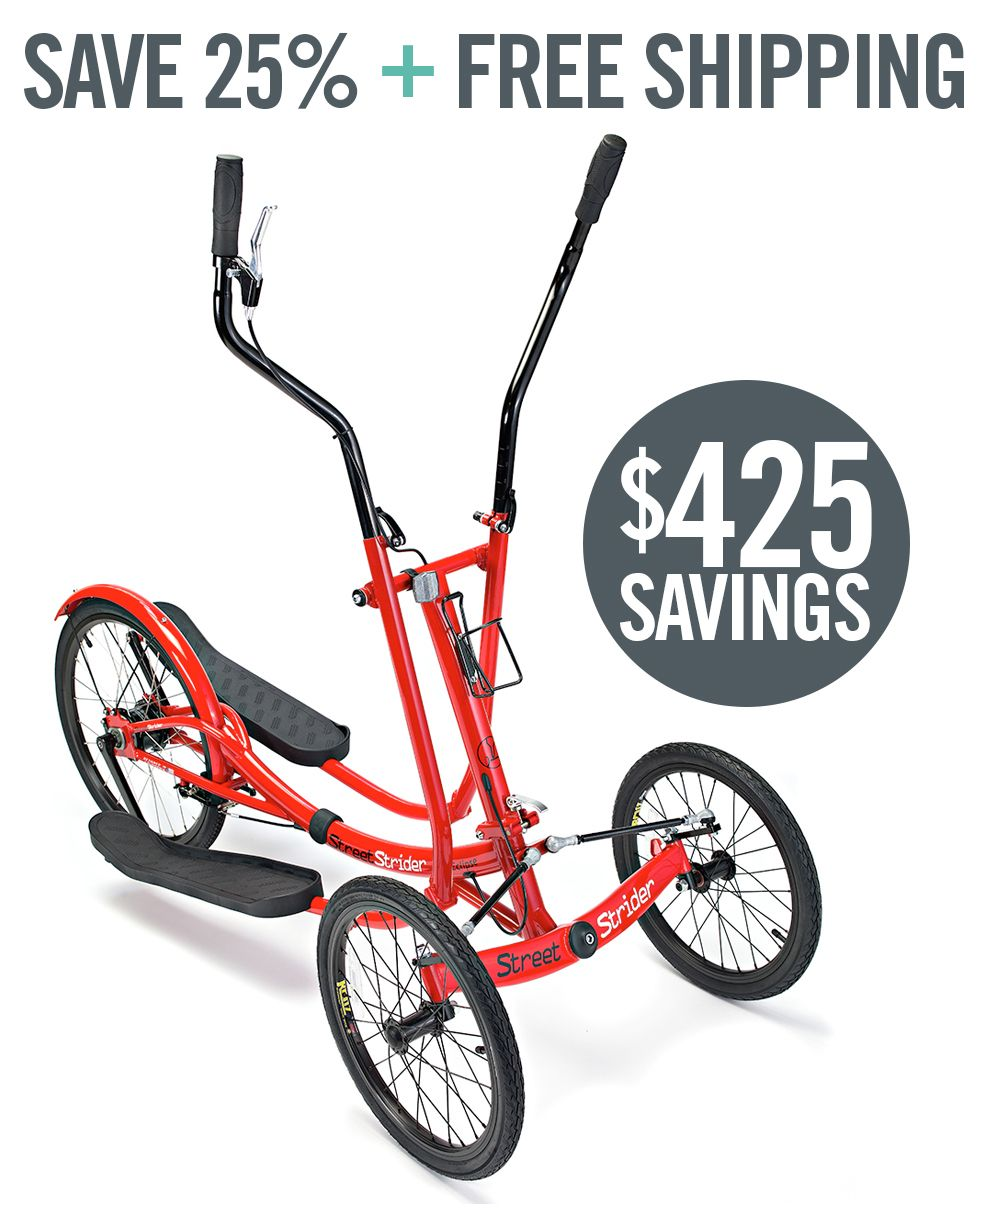 Elliptical Machine | Single Speed Chainless | Eclipse by StreetStrider - Making Fitness Fun | Outdoor Exercise Bike